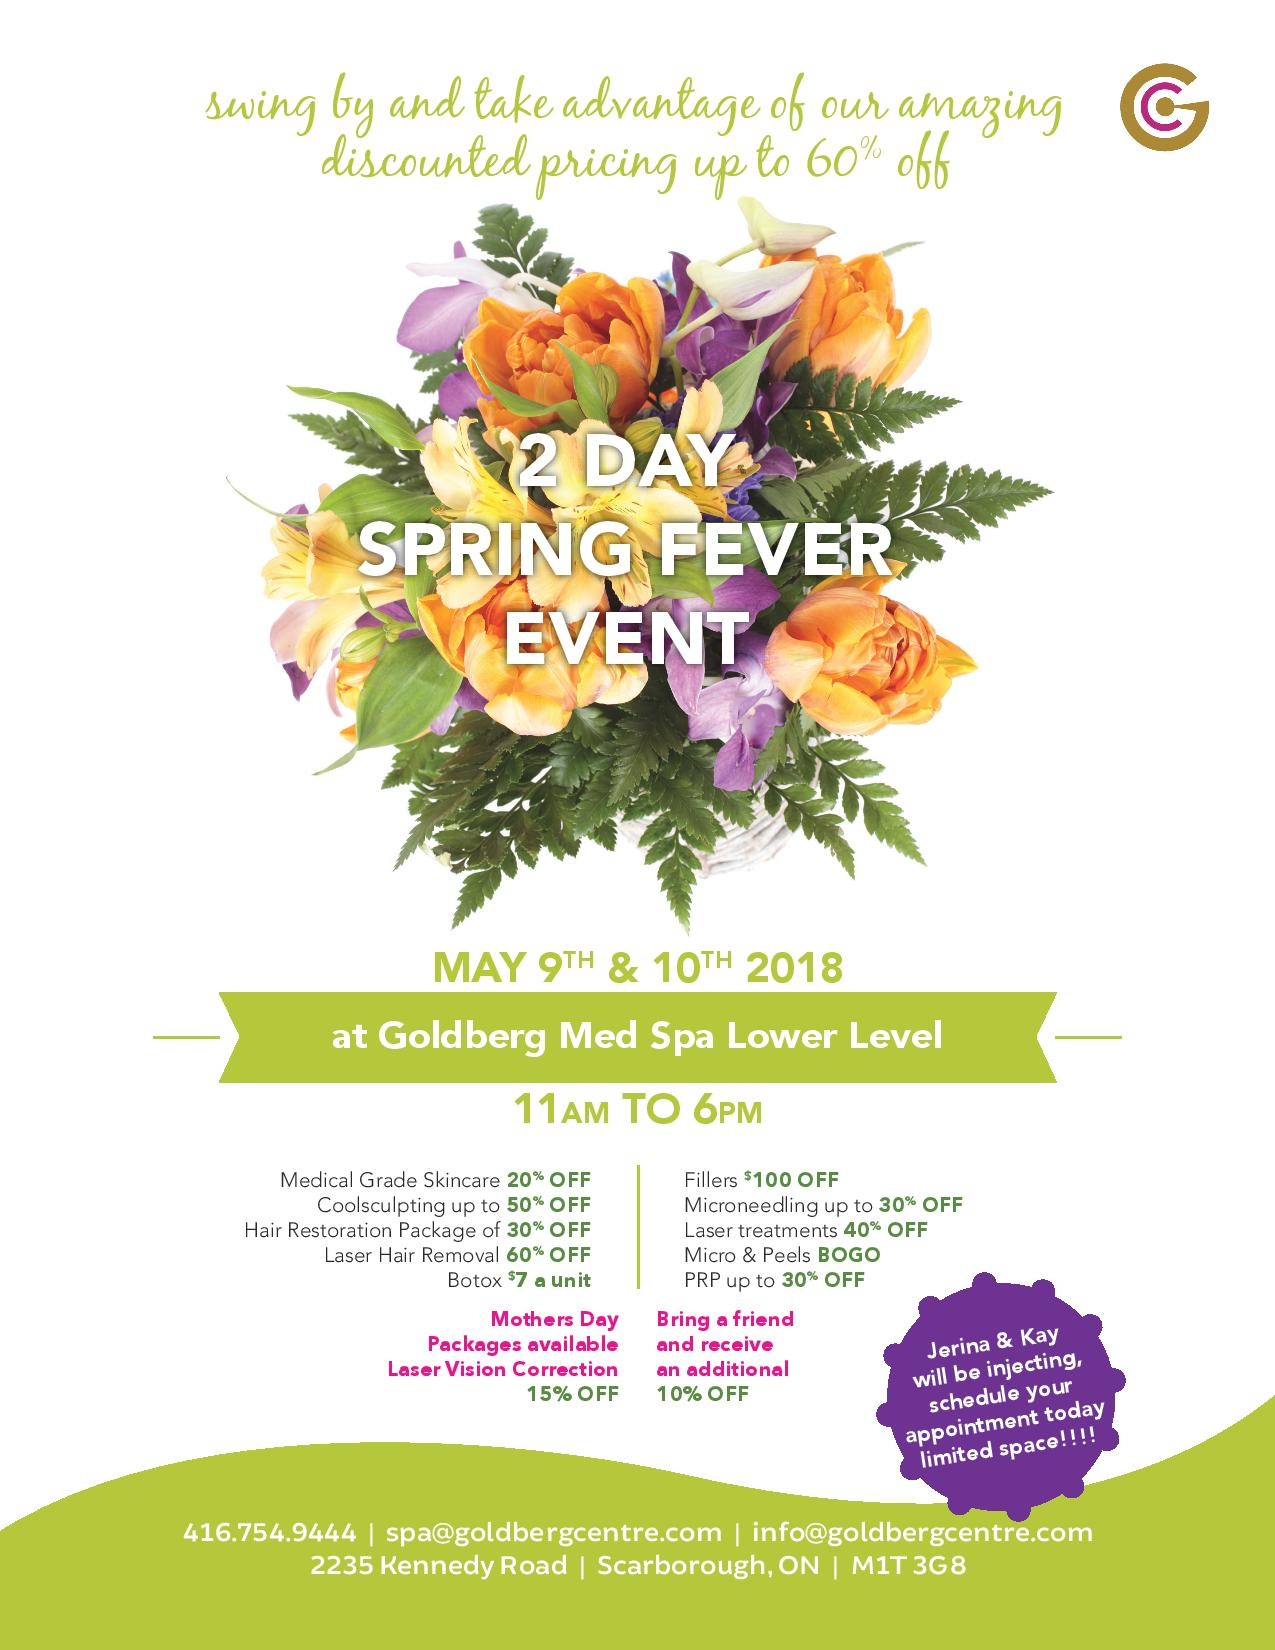 Toronto 2 Day Flash Spa Promotions!